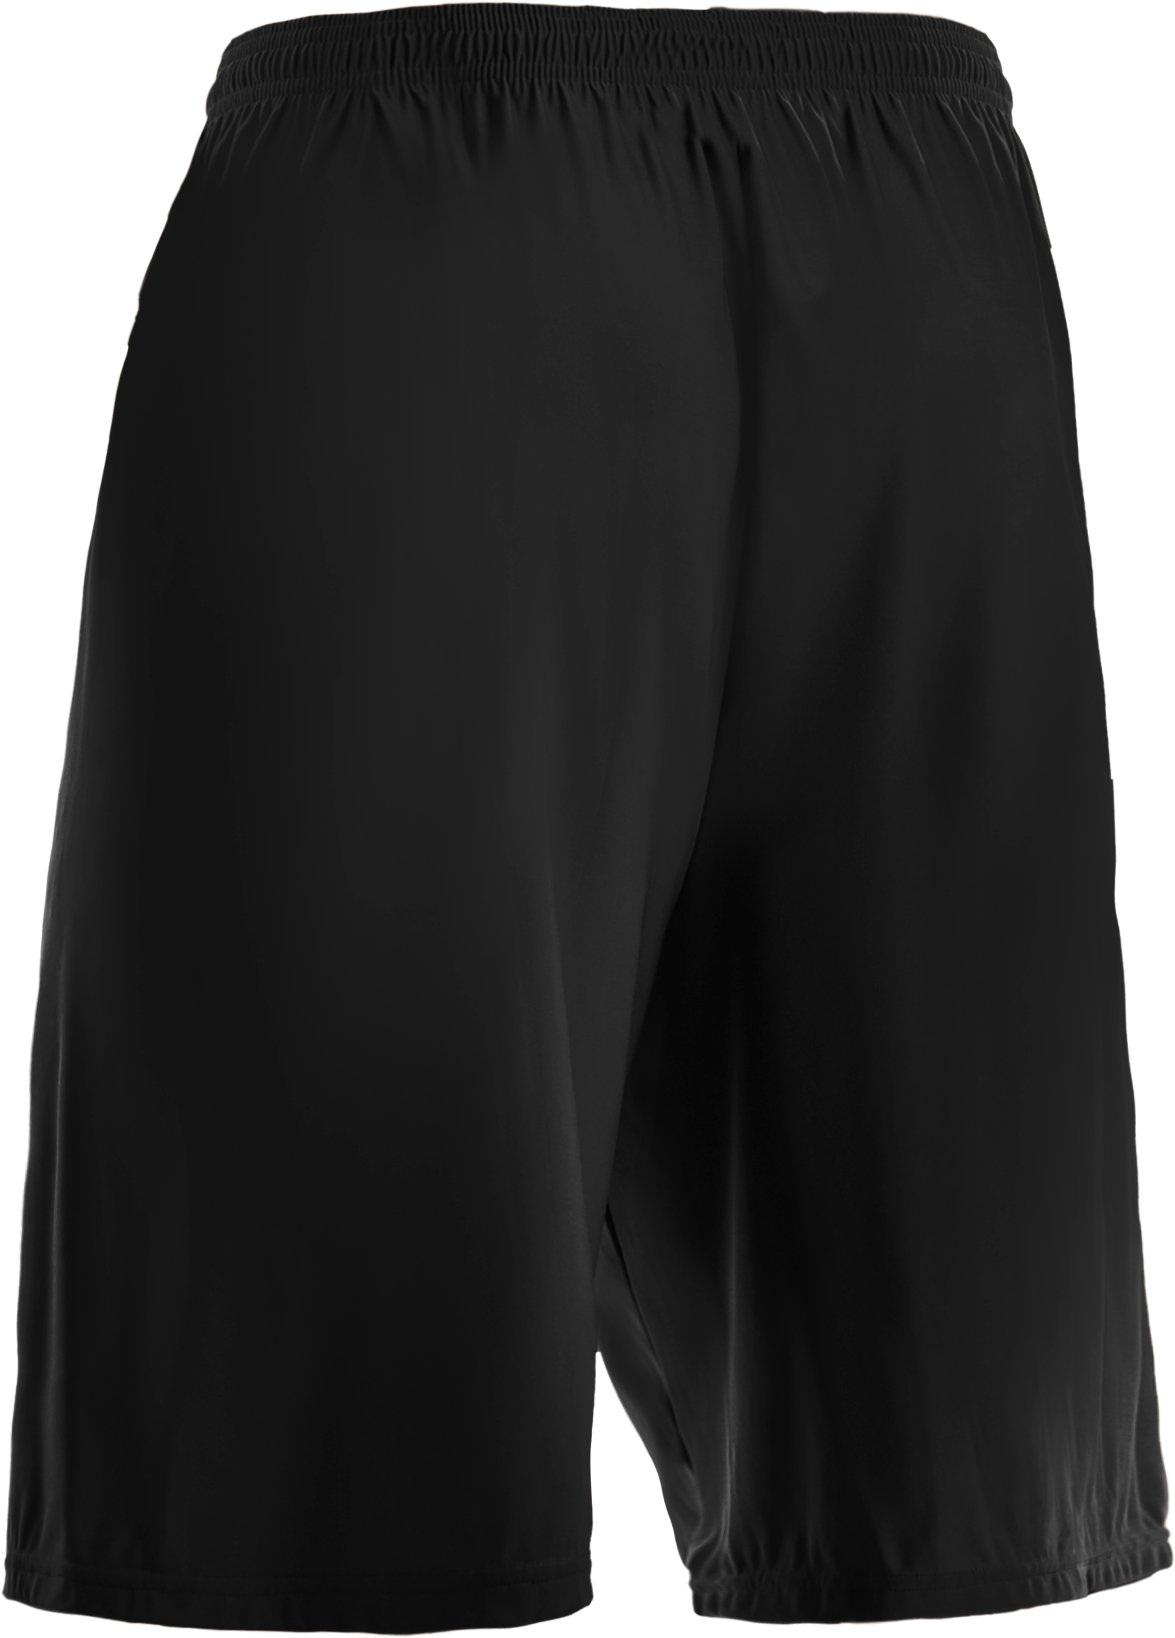 Men's UA Team Micro Shorts, Black , undefined